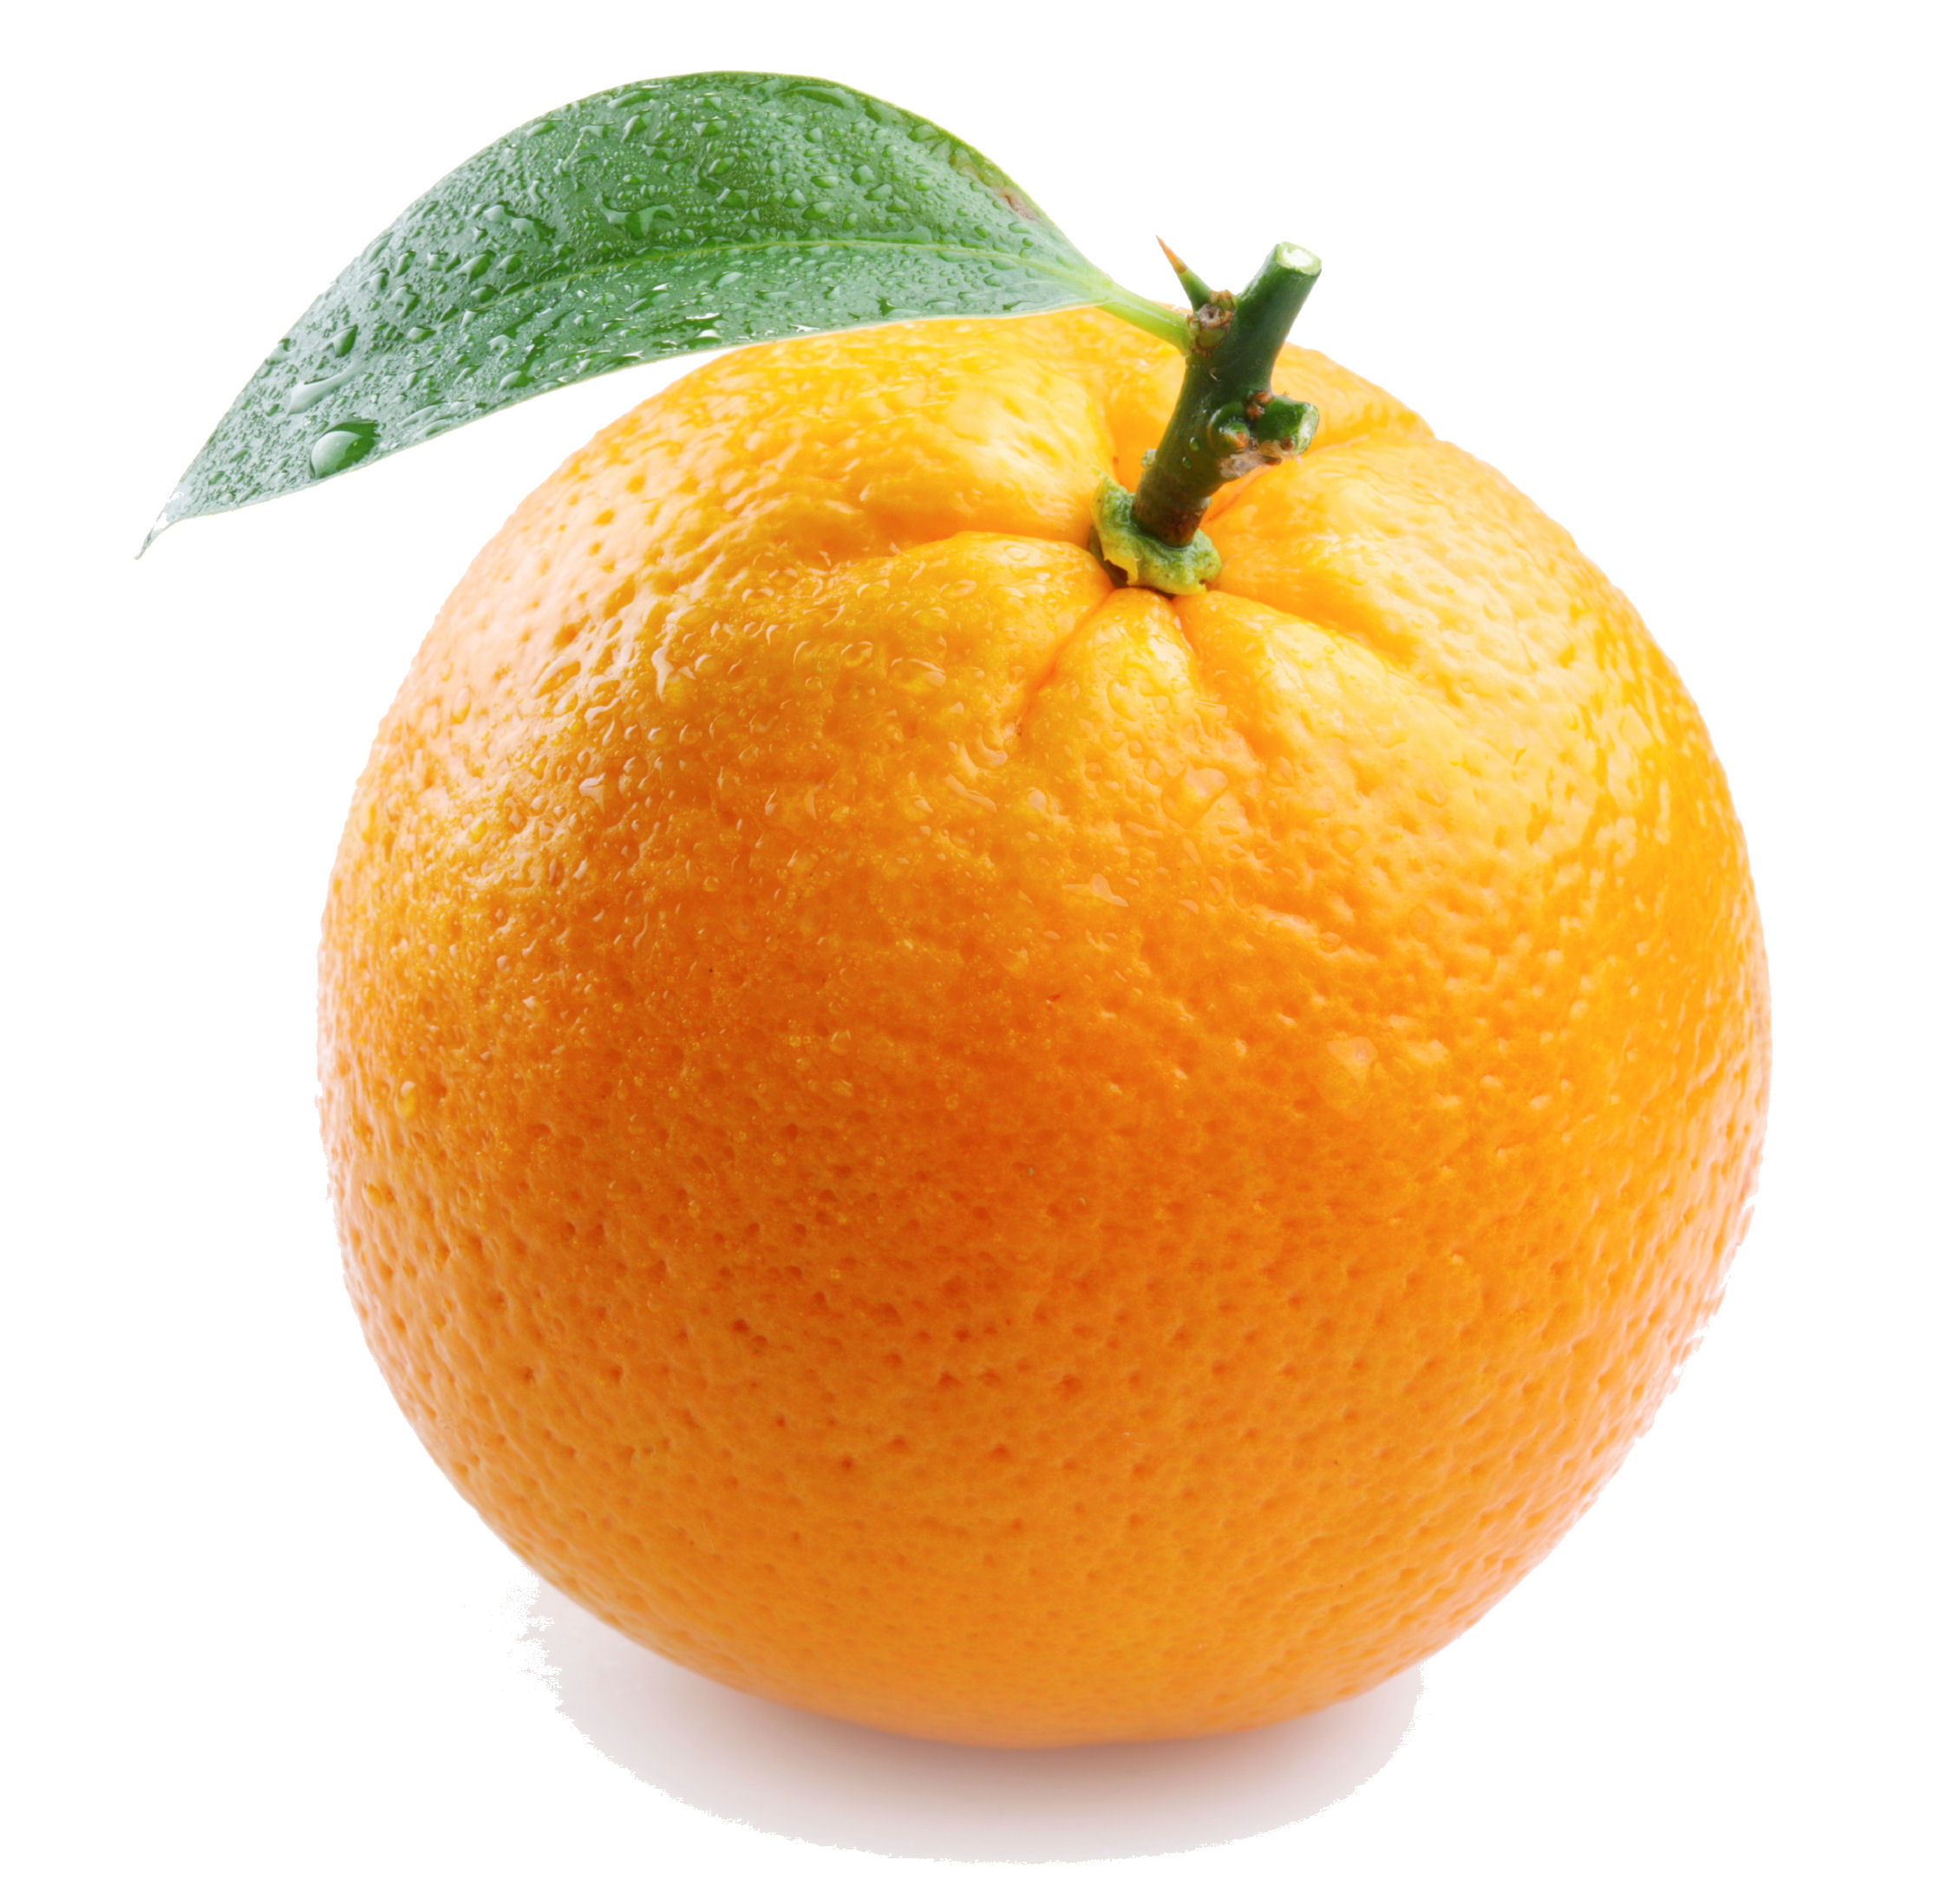 Indiana arkansas and an orange on the seder plate